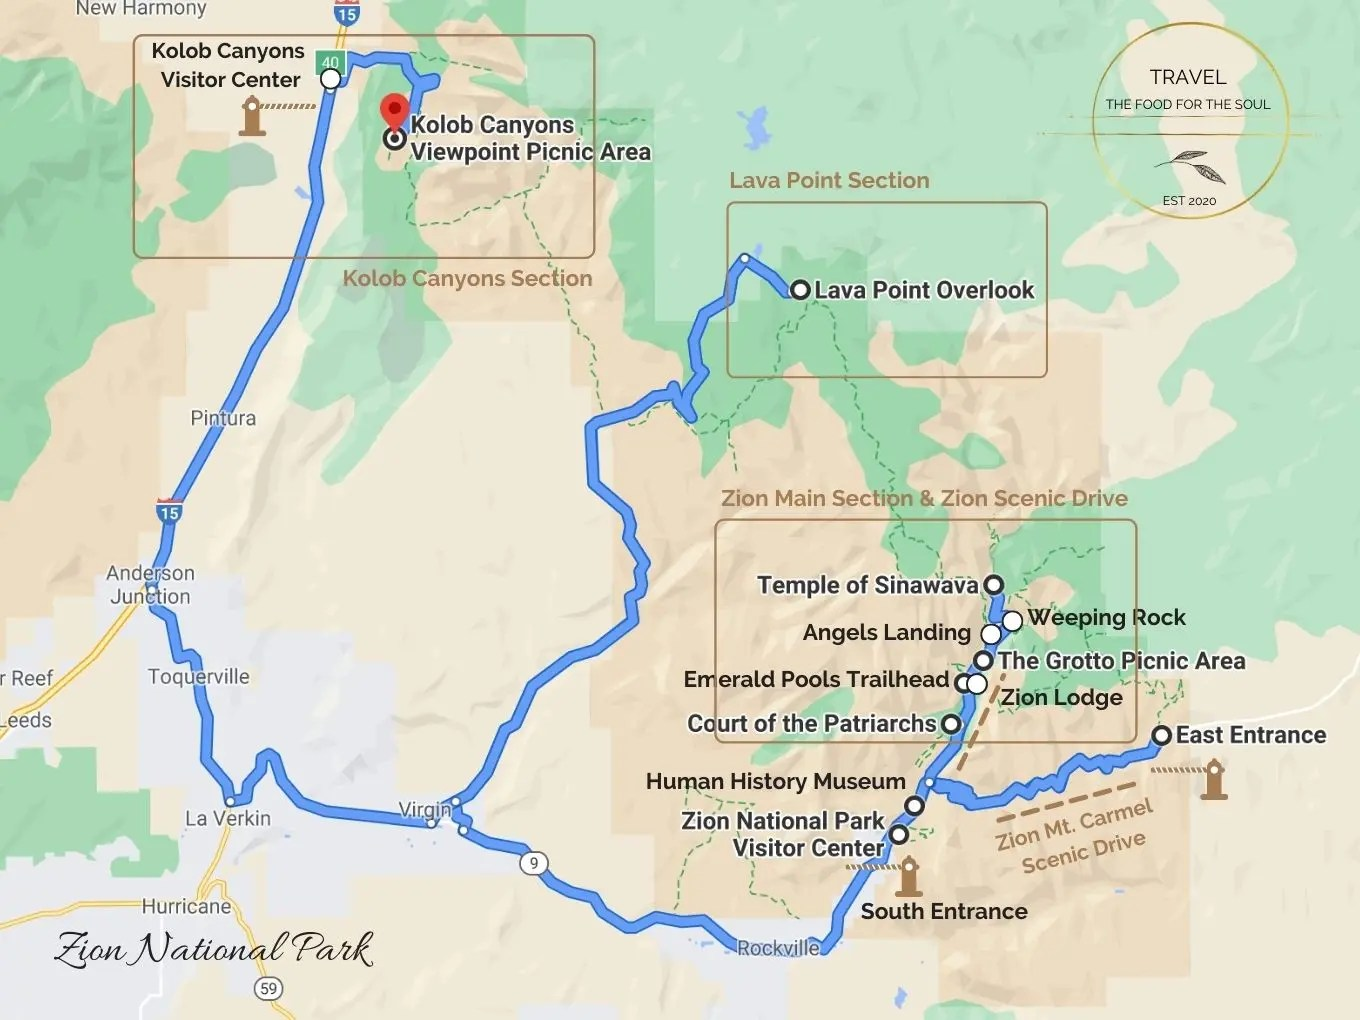 Zion National Park Attractions Map